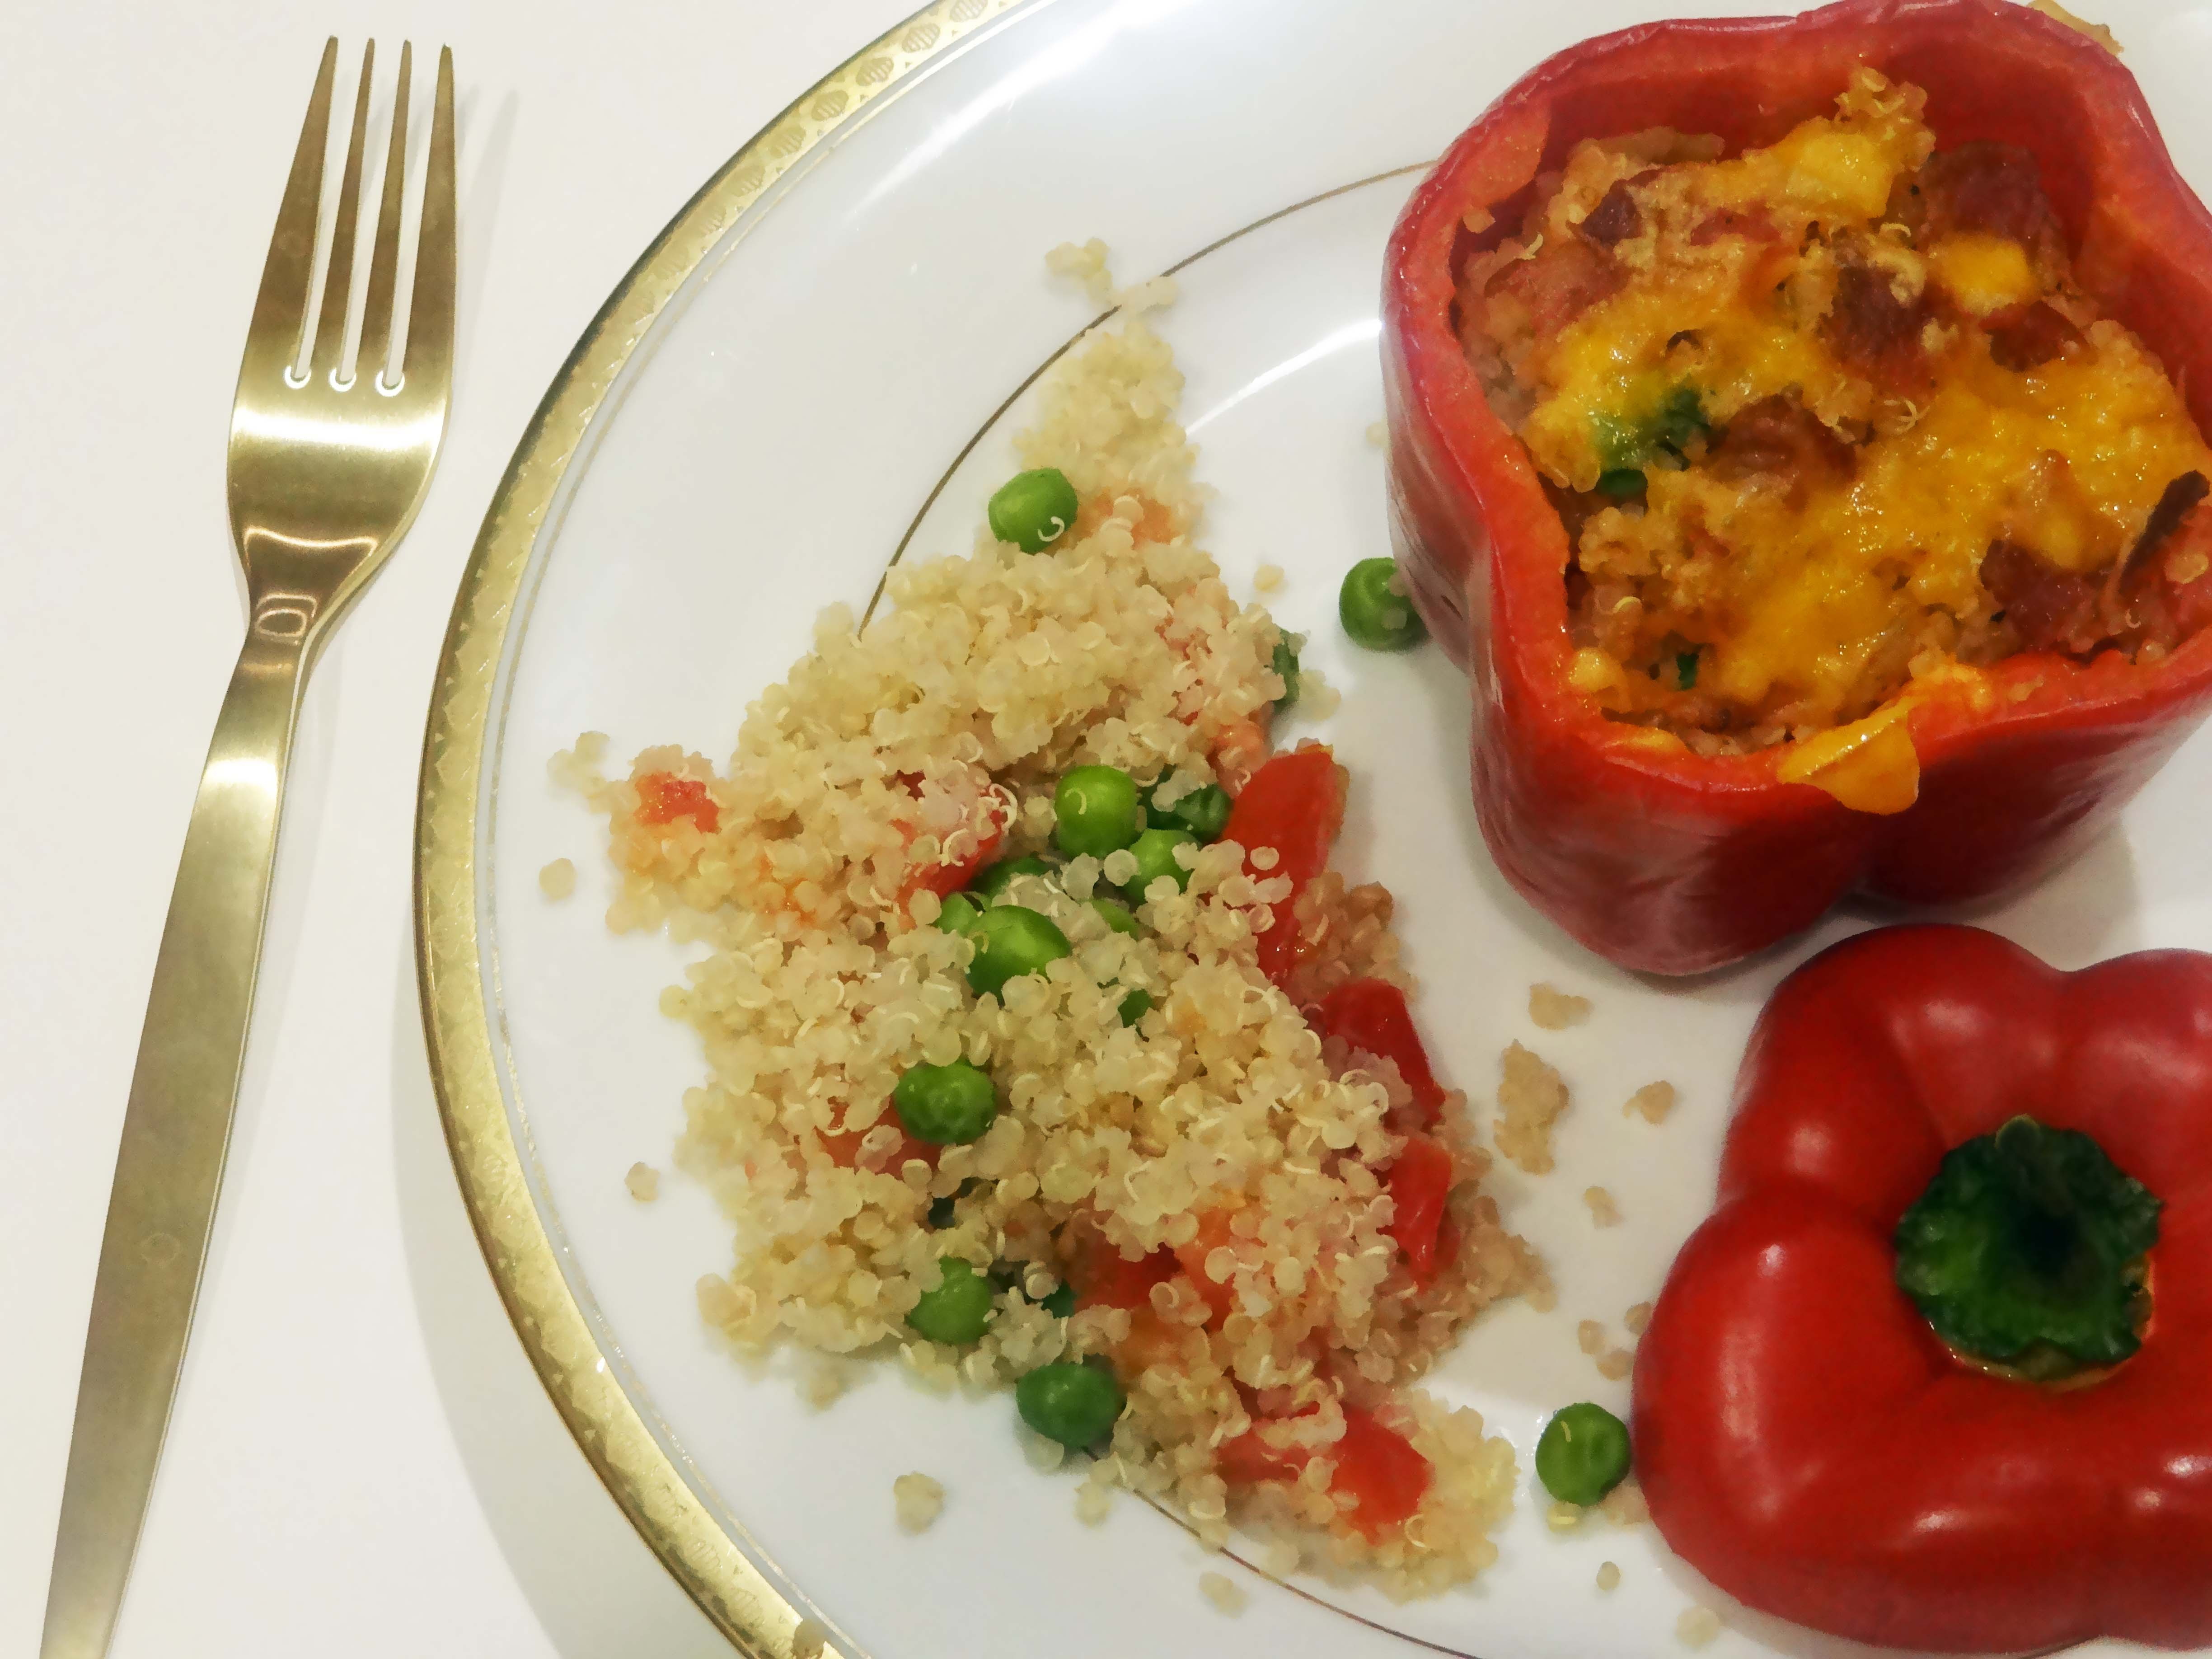 Lifestyle Blogger, Healthy Dinner, Quinoa, Quinoa Recipes, Healthy Recipes, Stuffed Peppers, Lifestyle Blog,